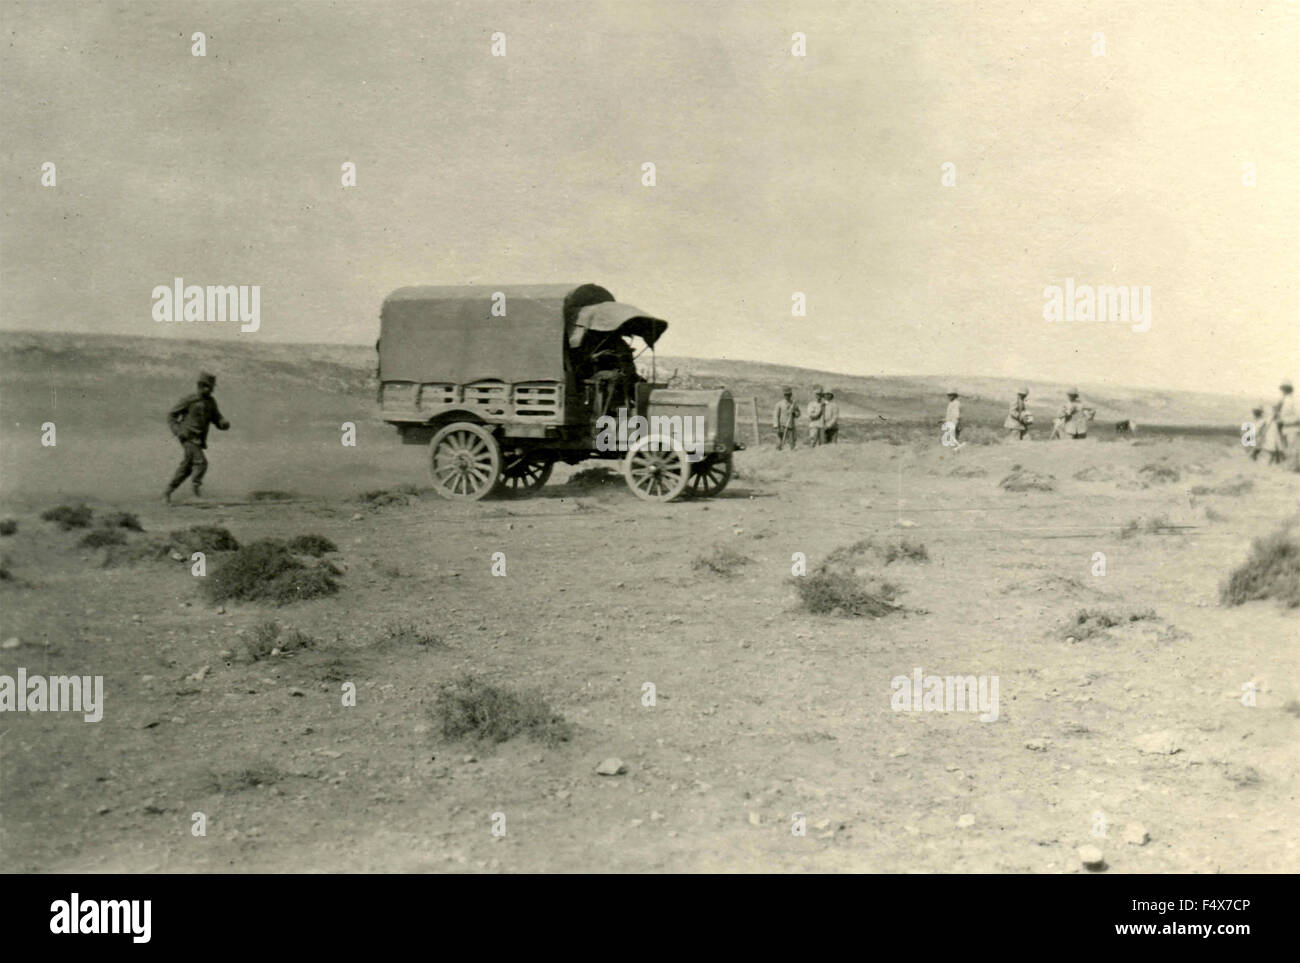 An army truck near the troops digging trenches - Stock Image